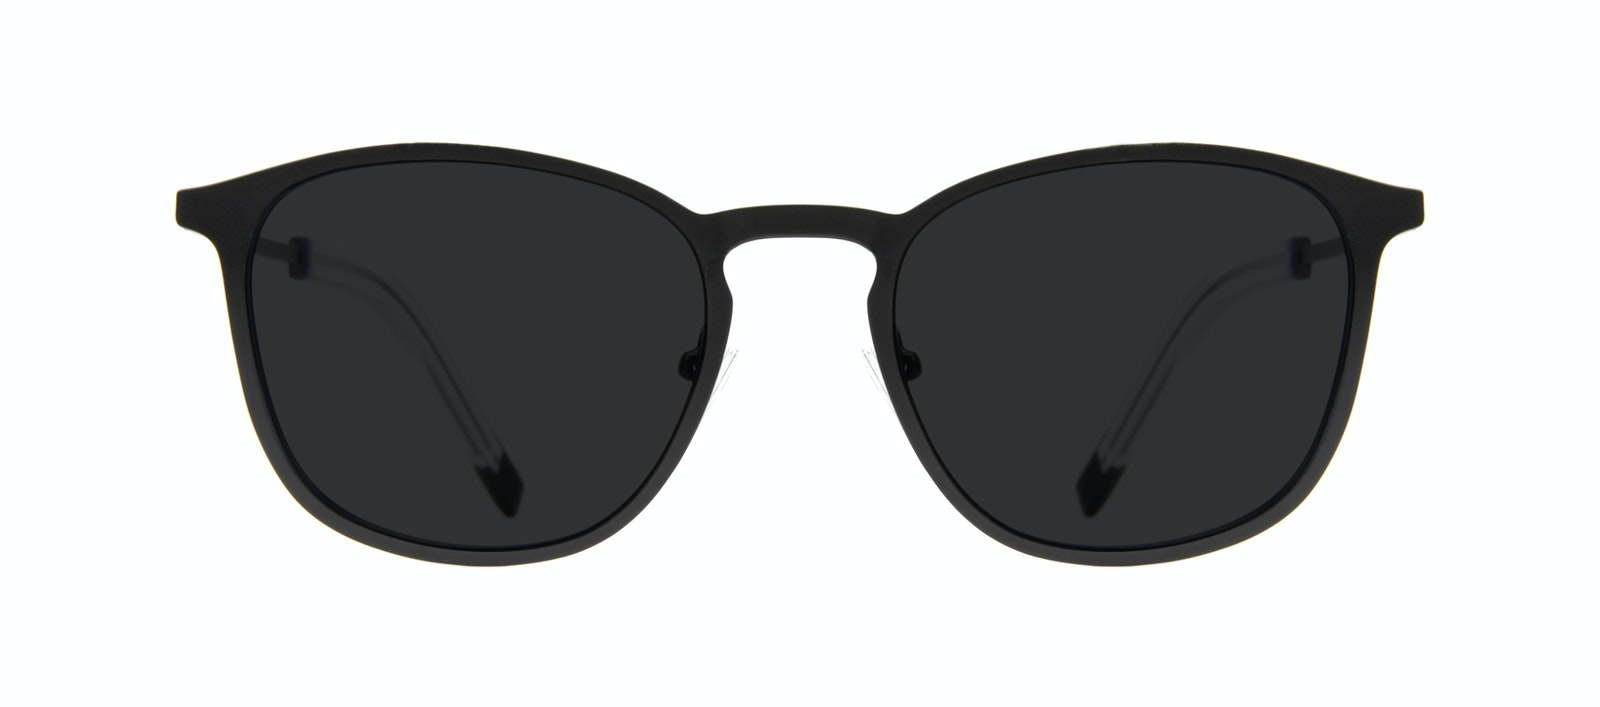 Affordable Fashion Glasses Rectangle Square Sunglasses Men Core Matte Black Front